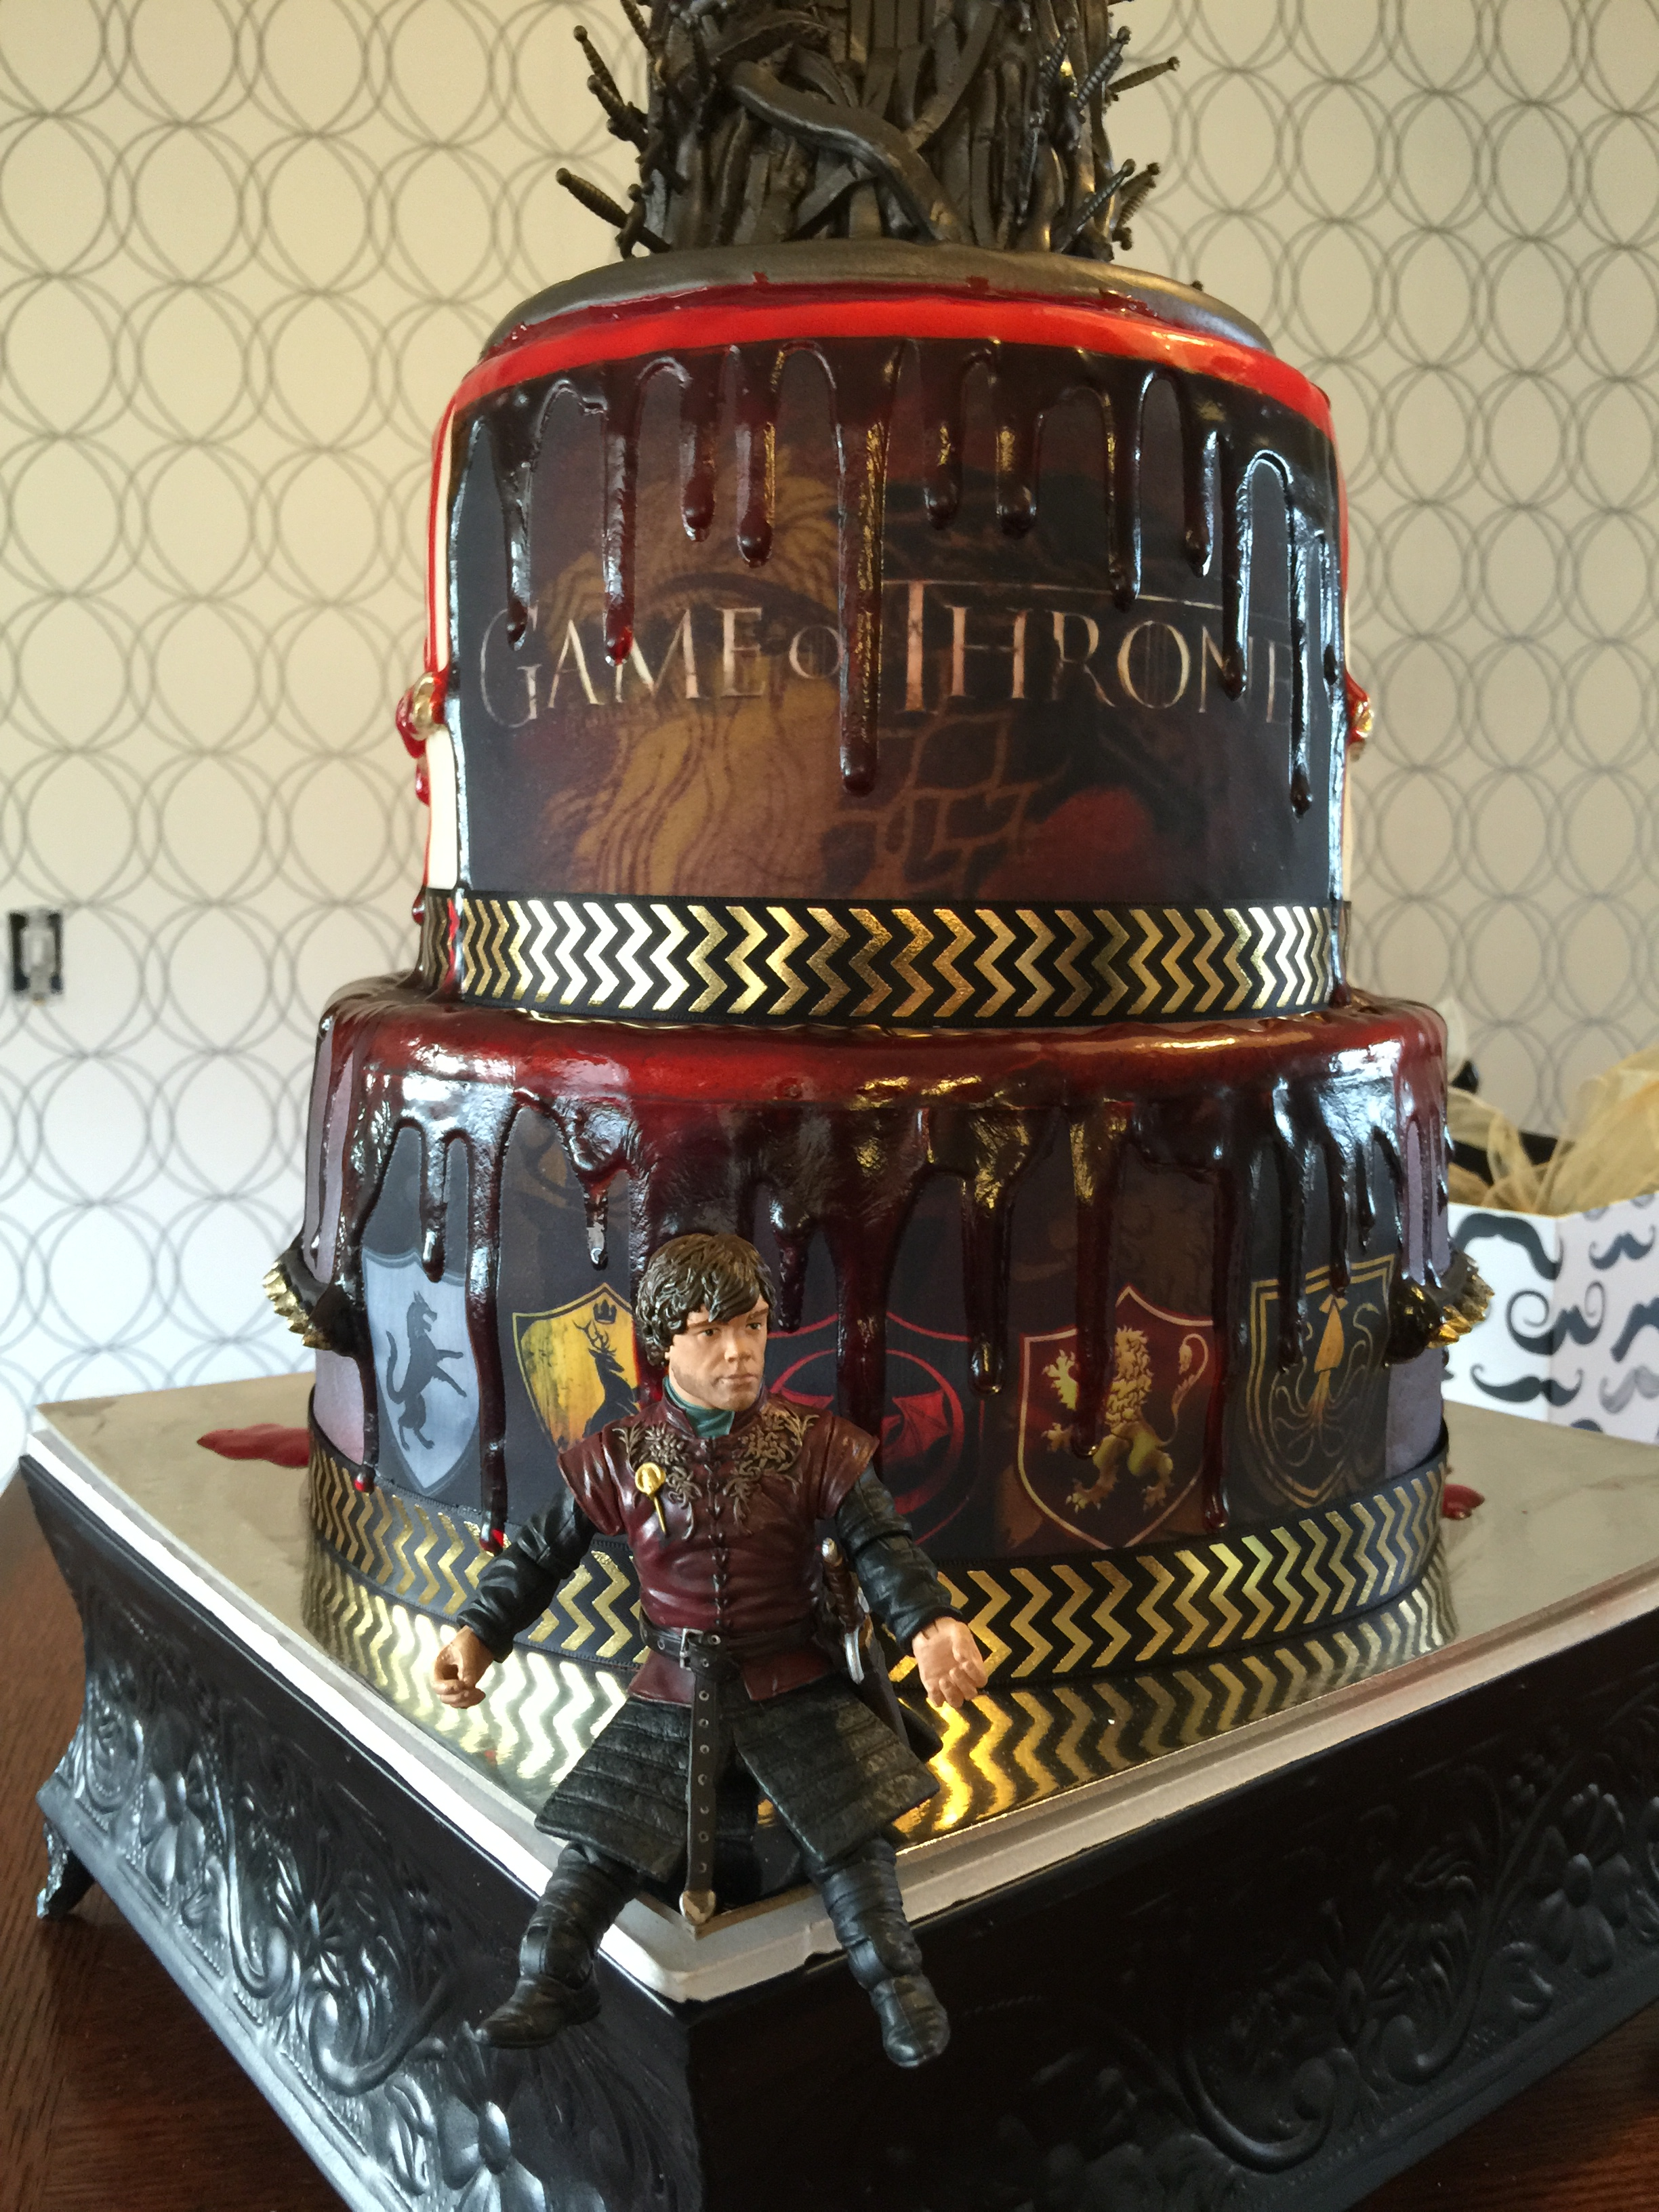 This Incredible Game Of Thrones Cake Looks Bloody